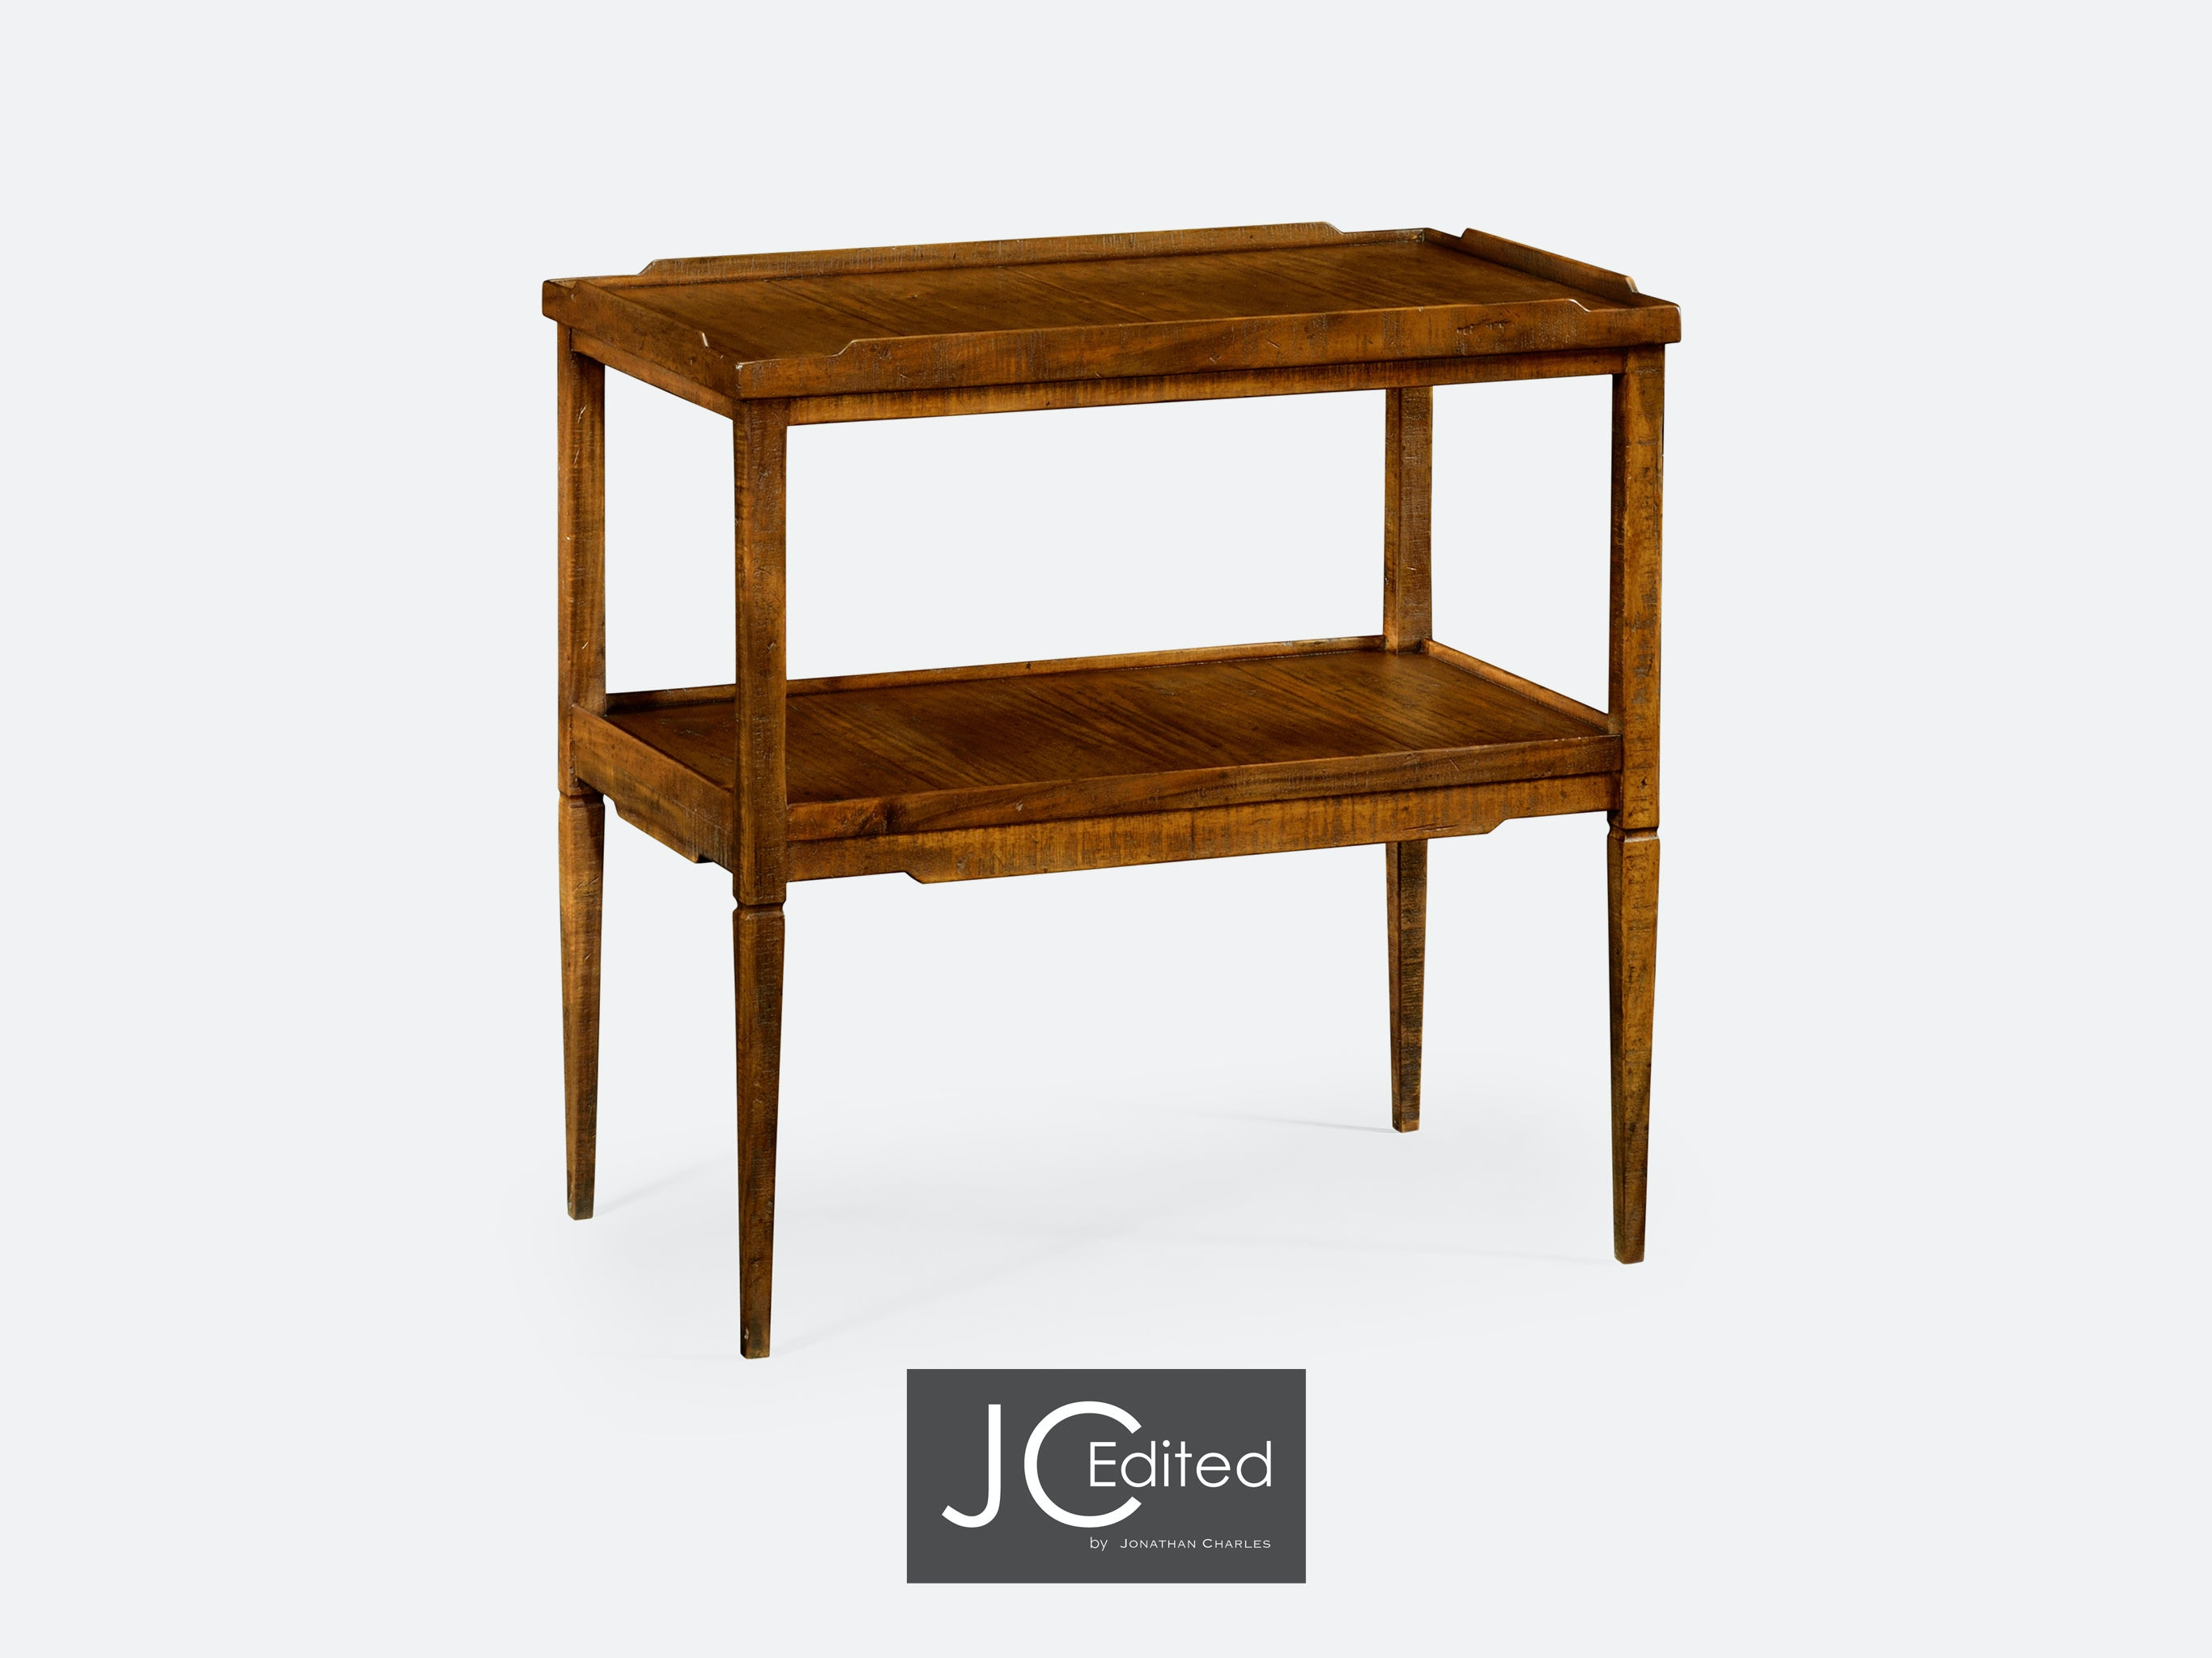 Ordinaire Jonathan Charles Walnut Country Style Side Table QJ491020CFW From Walter E.  Smithe Furniture + Design